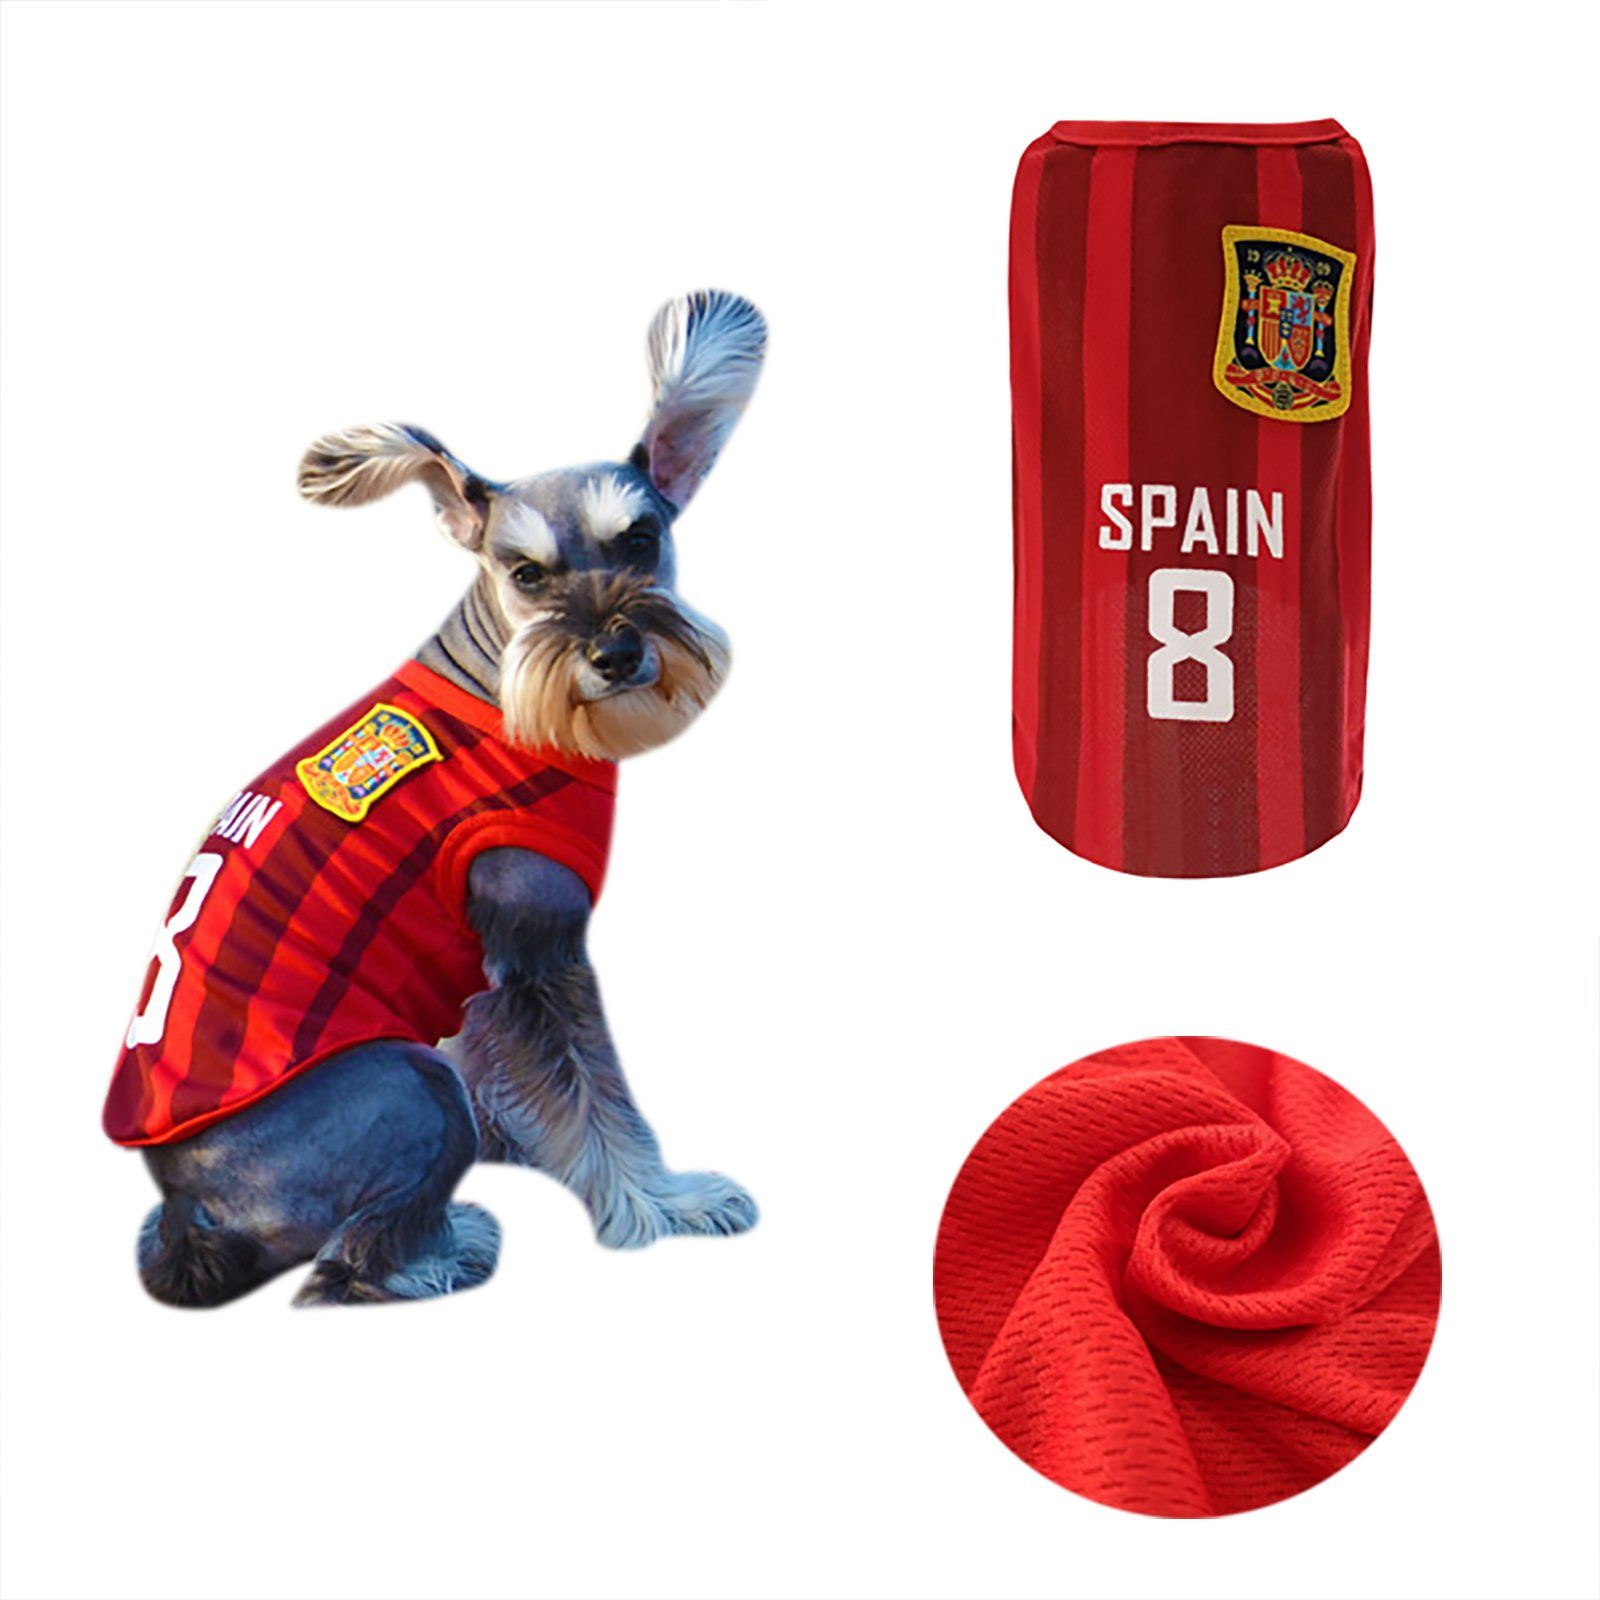 668bc79741d Yizhi Miaow Dog Soccer Jersey World Cup Pet TshirtDog Costume to Celebrate  The Russia 2018 FIFA